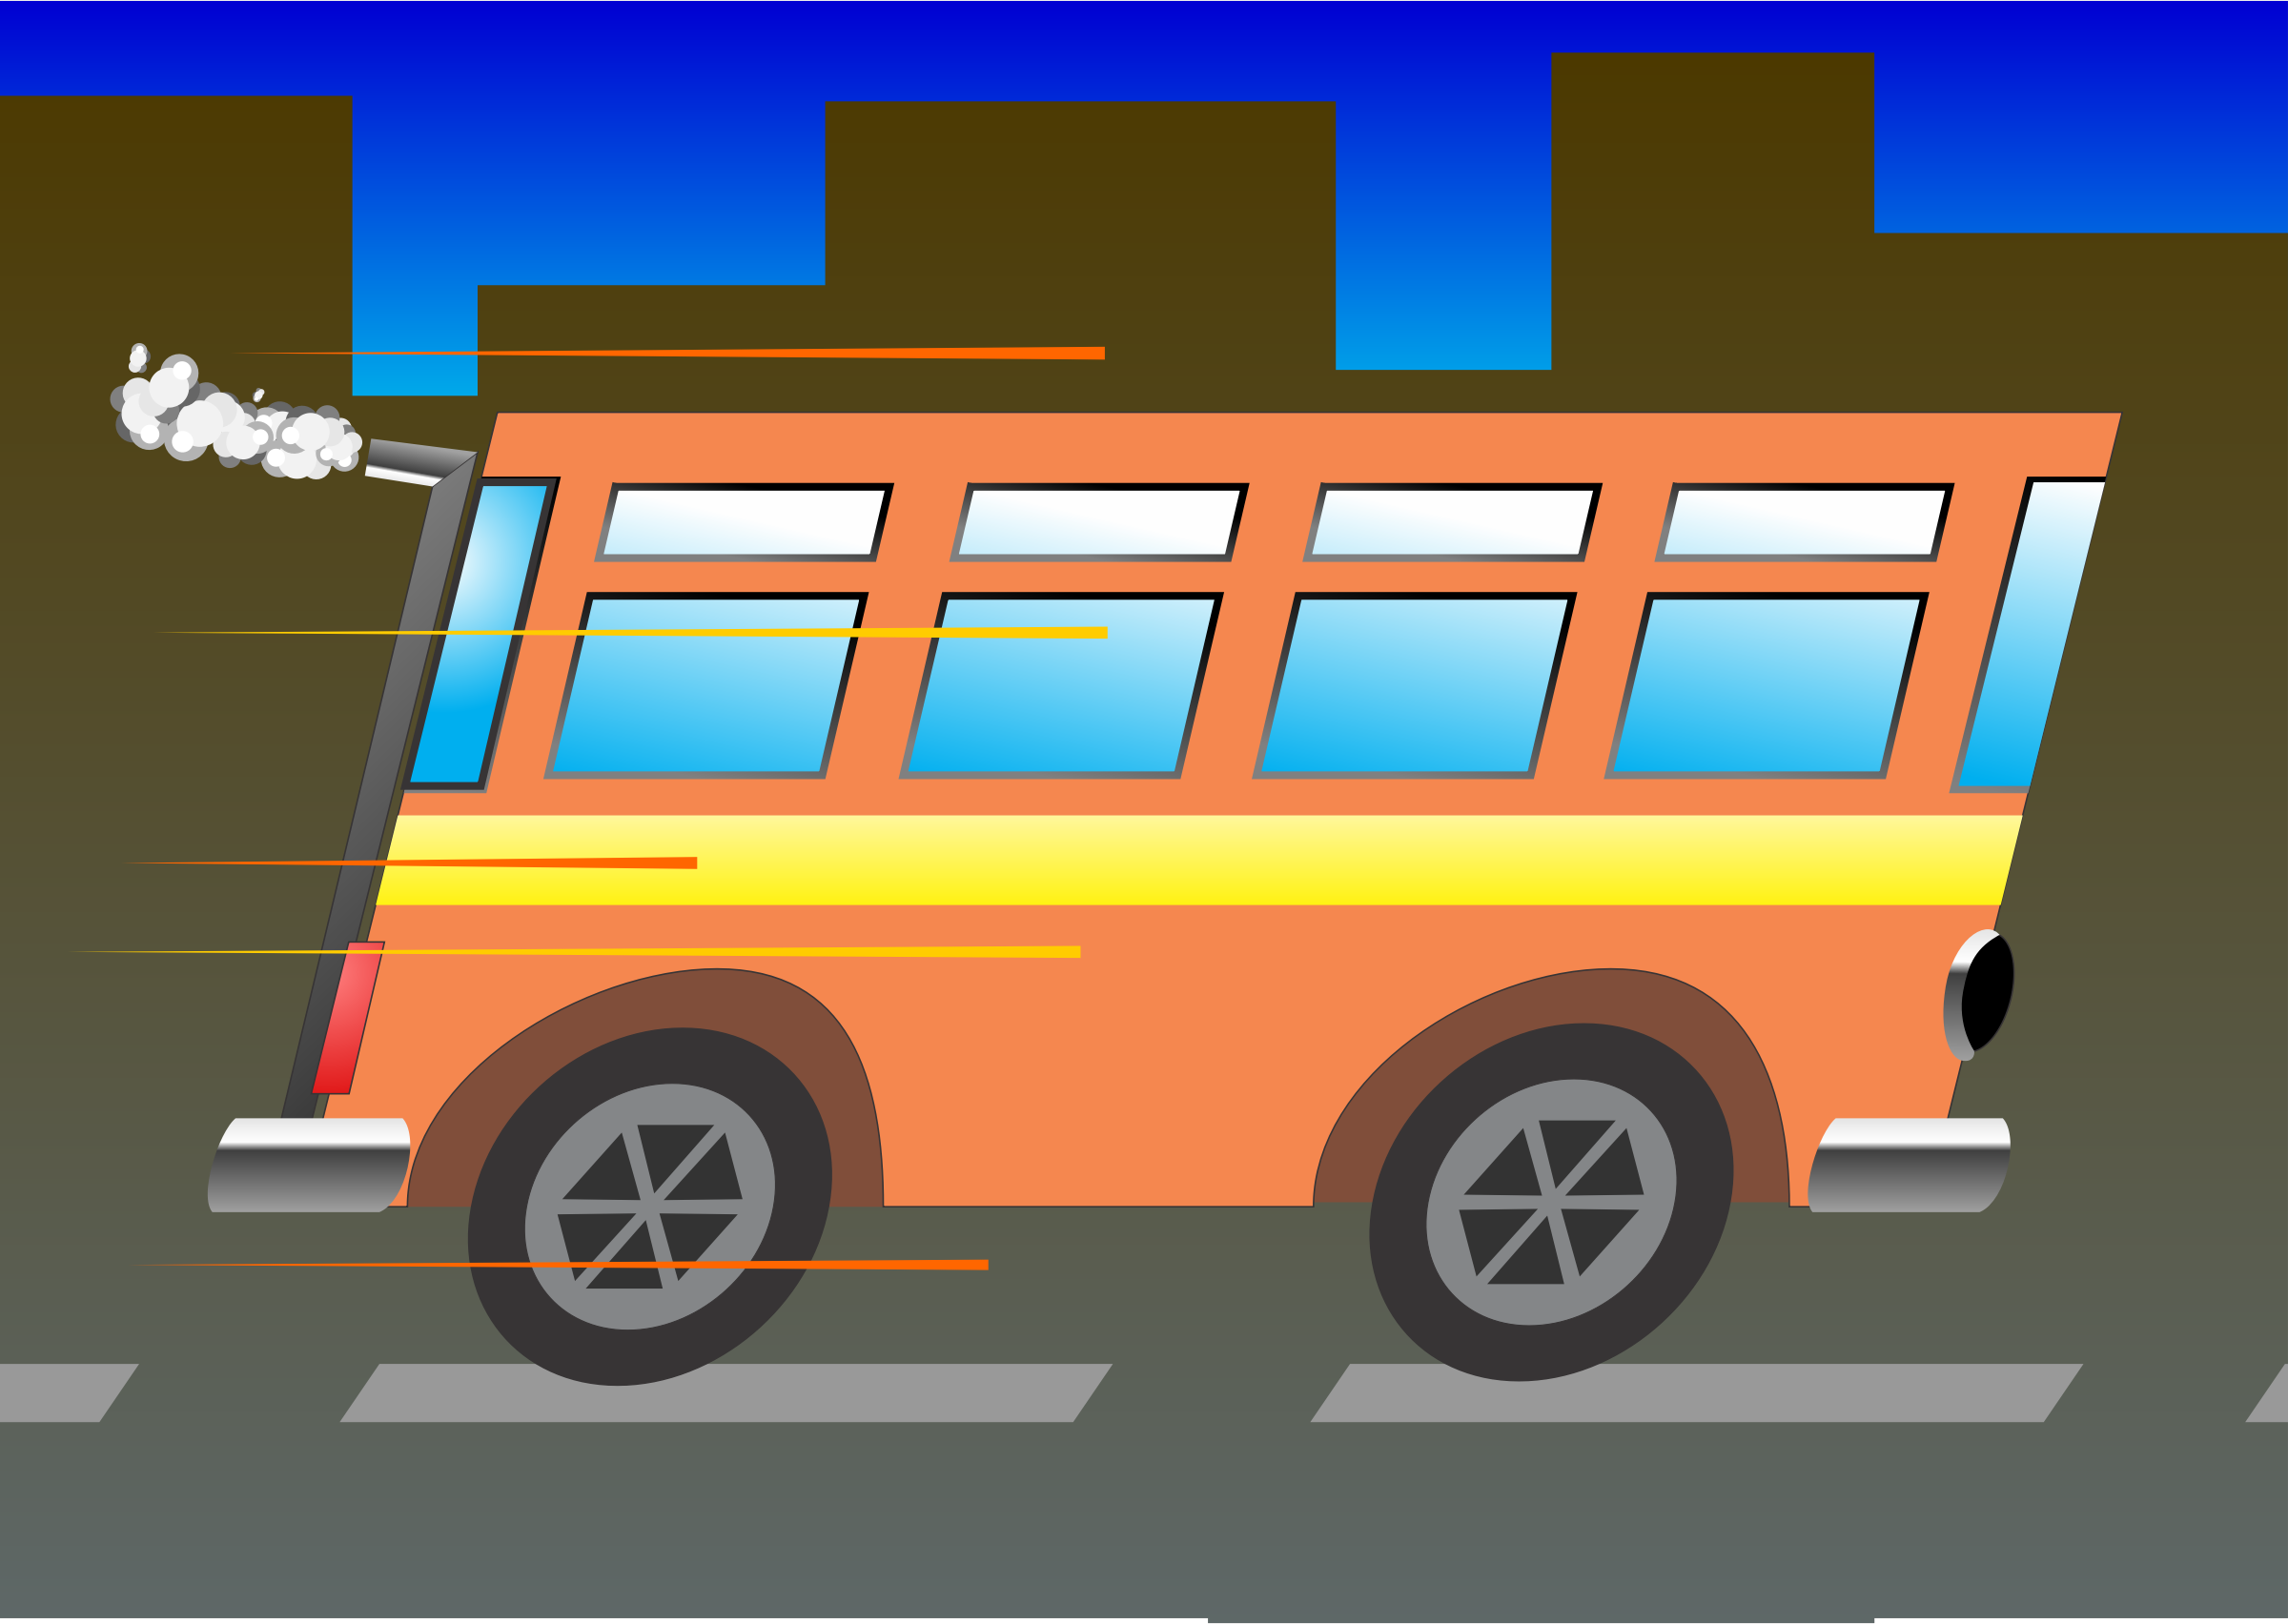 School Bus by gustavorezende